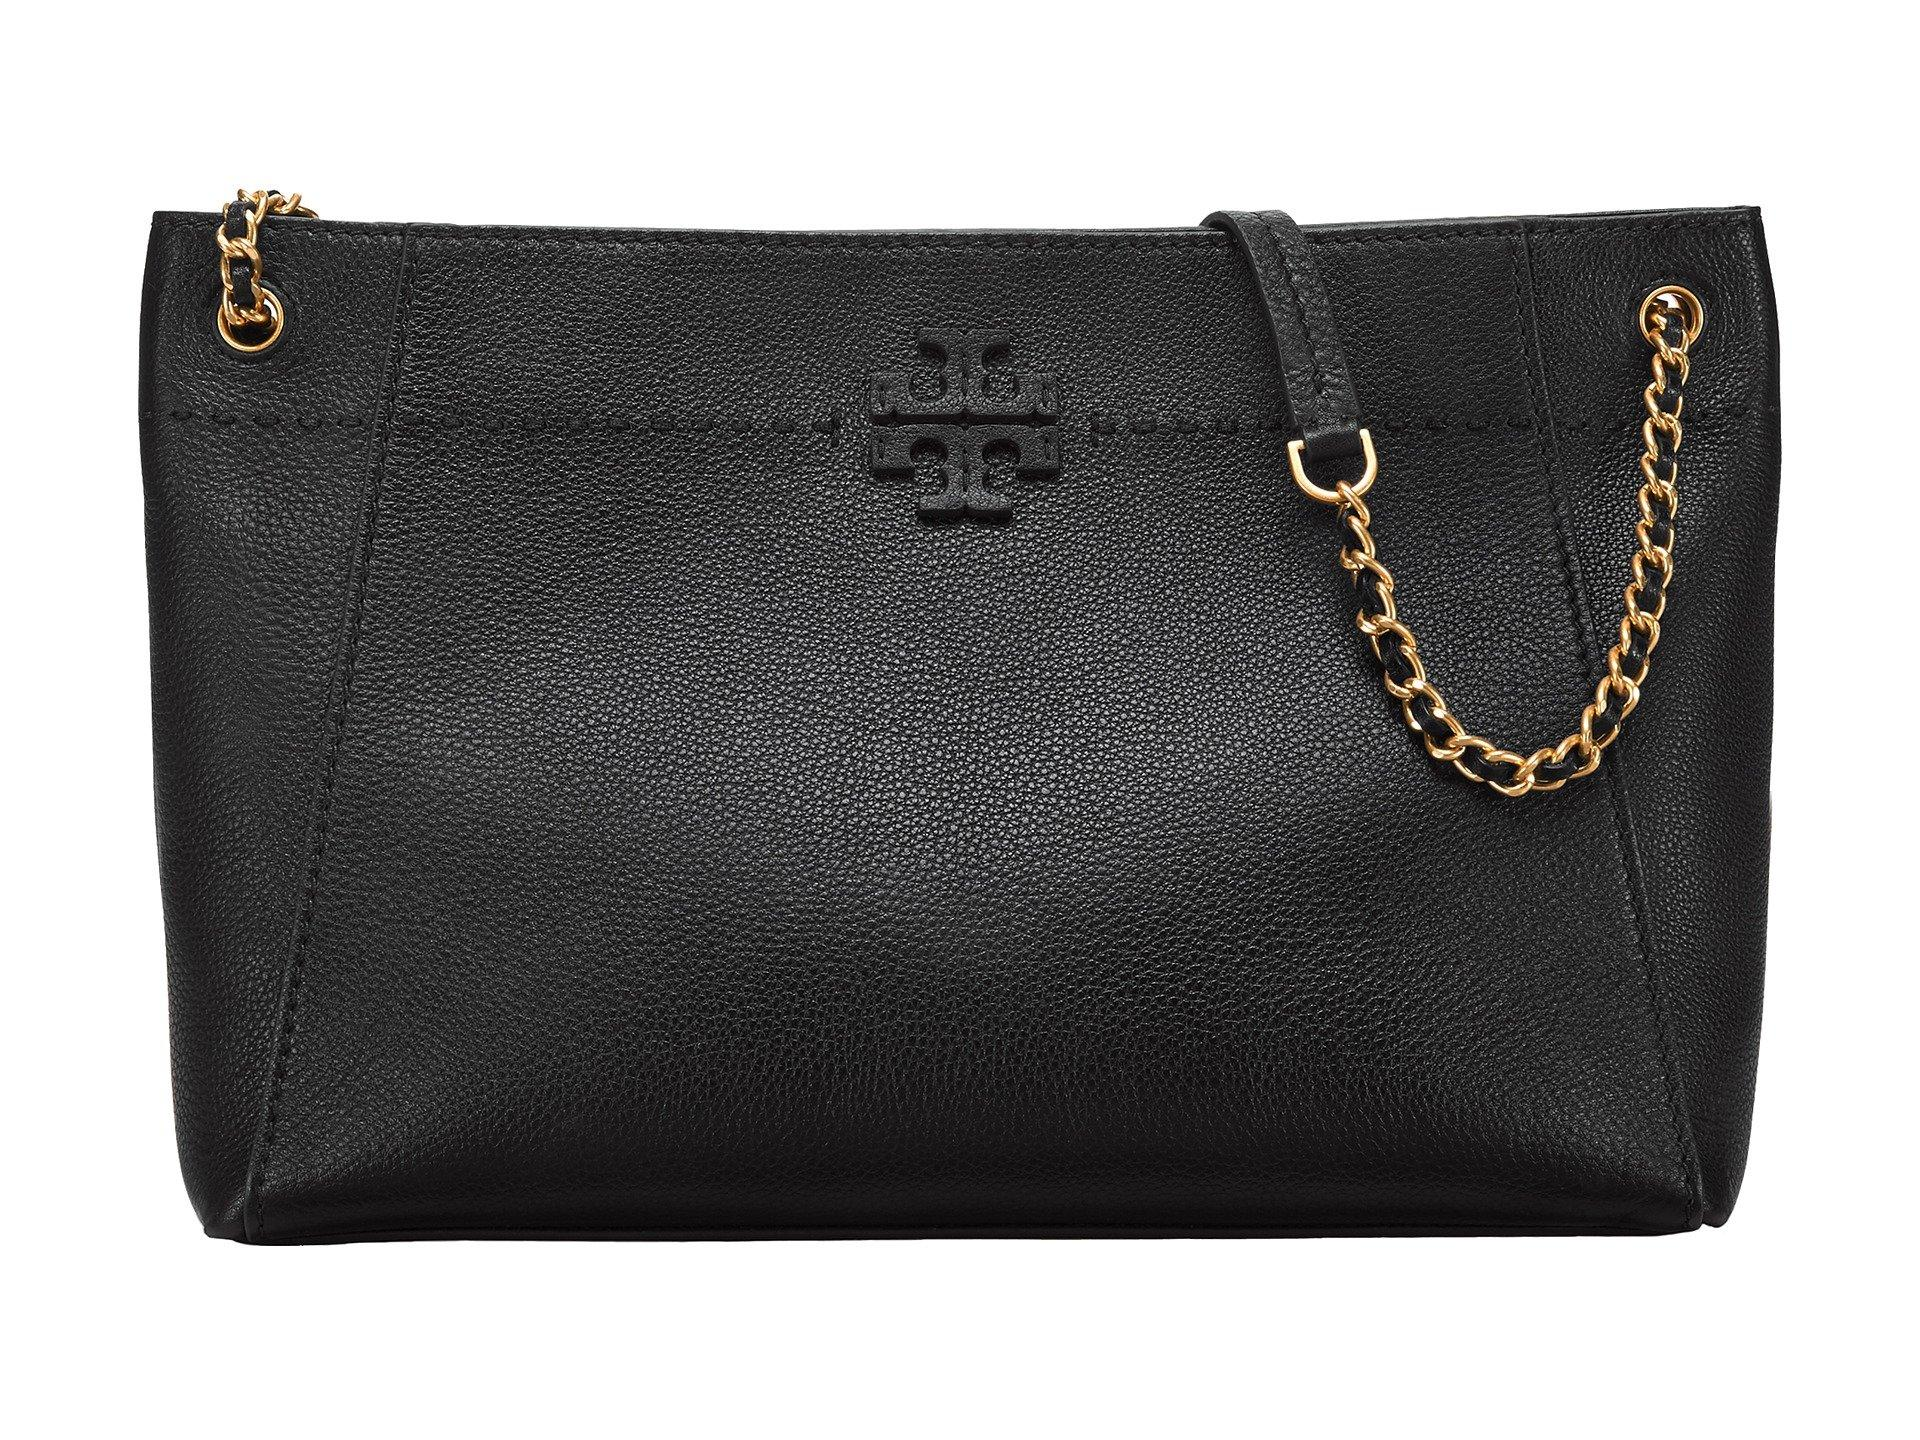 dcf2b75072e8 Lyst - Tory Burch Mcgraw Chain-shoulder Slouchy Tote in Black - Save 48%